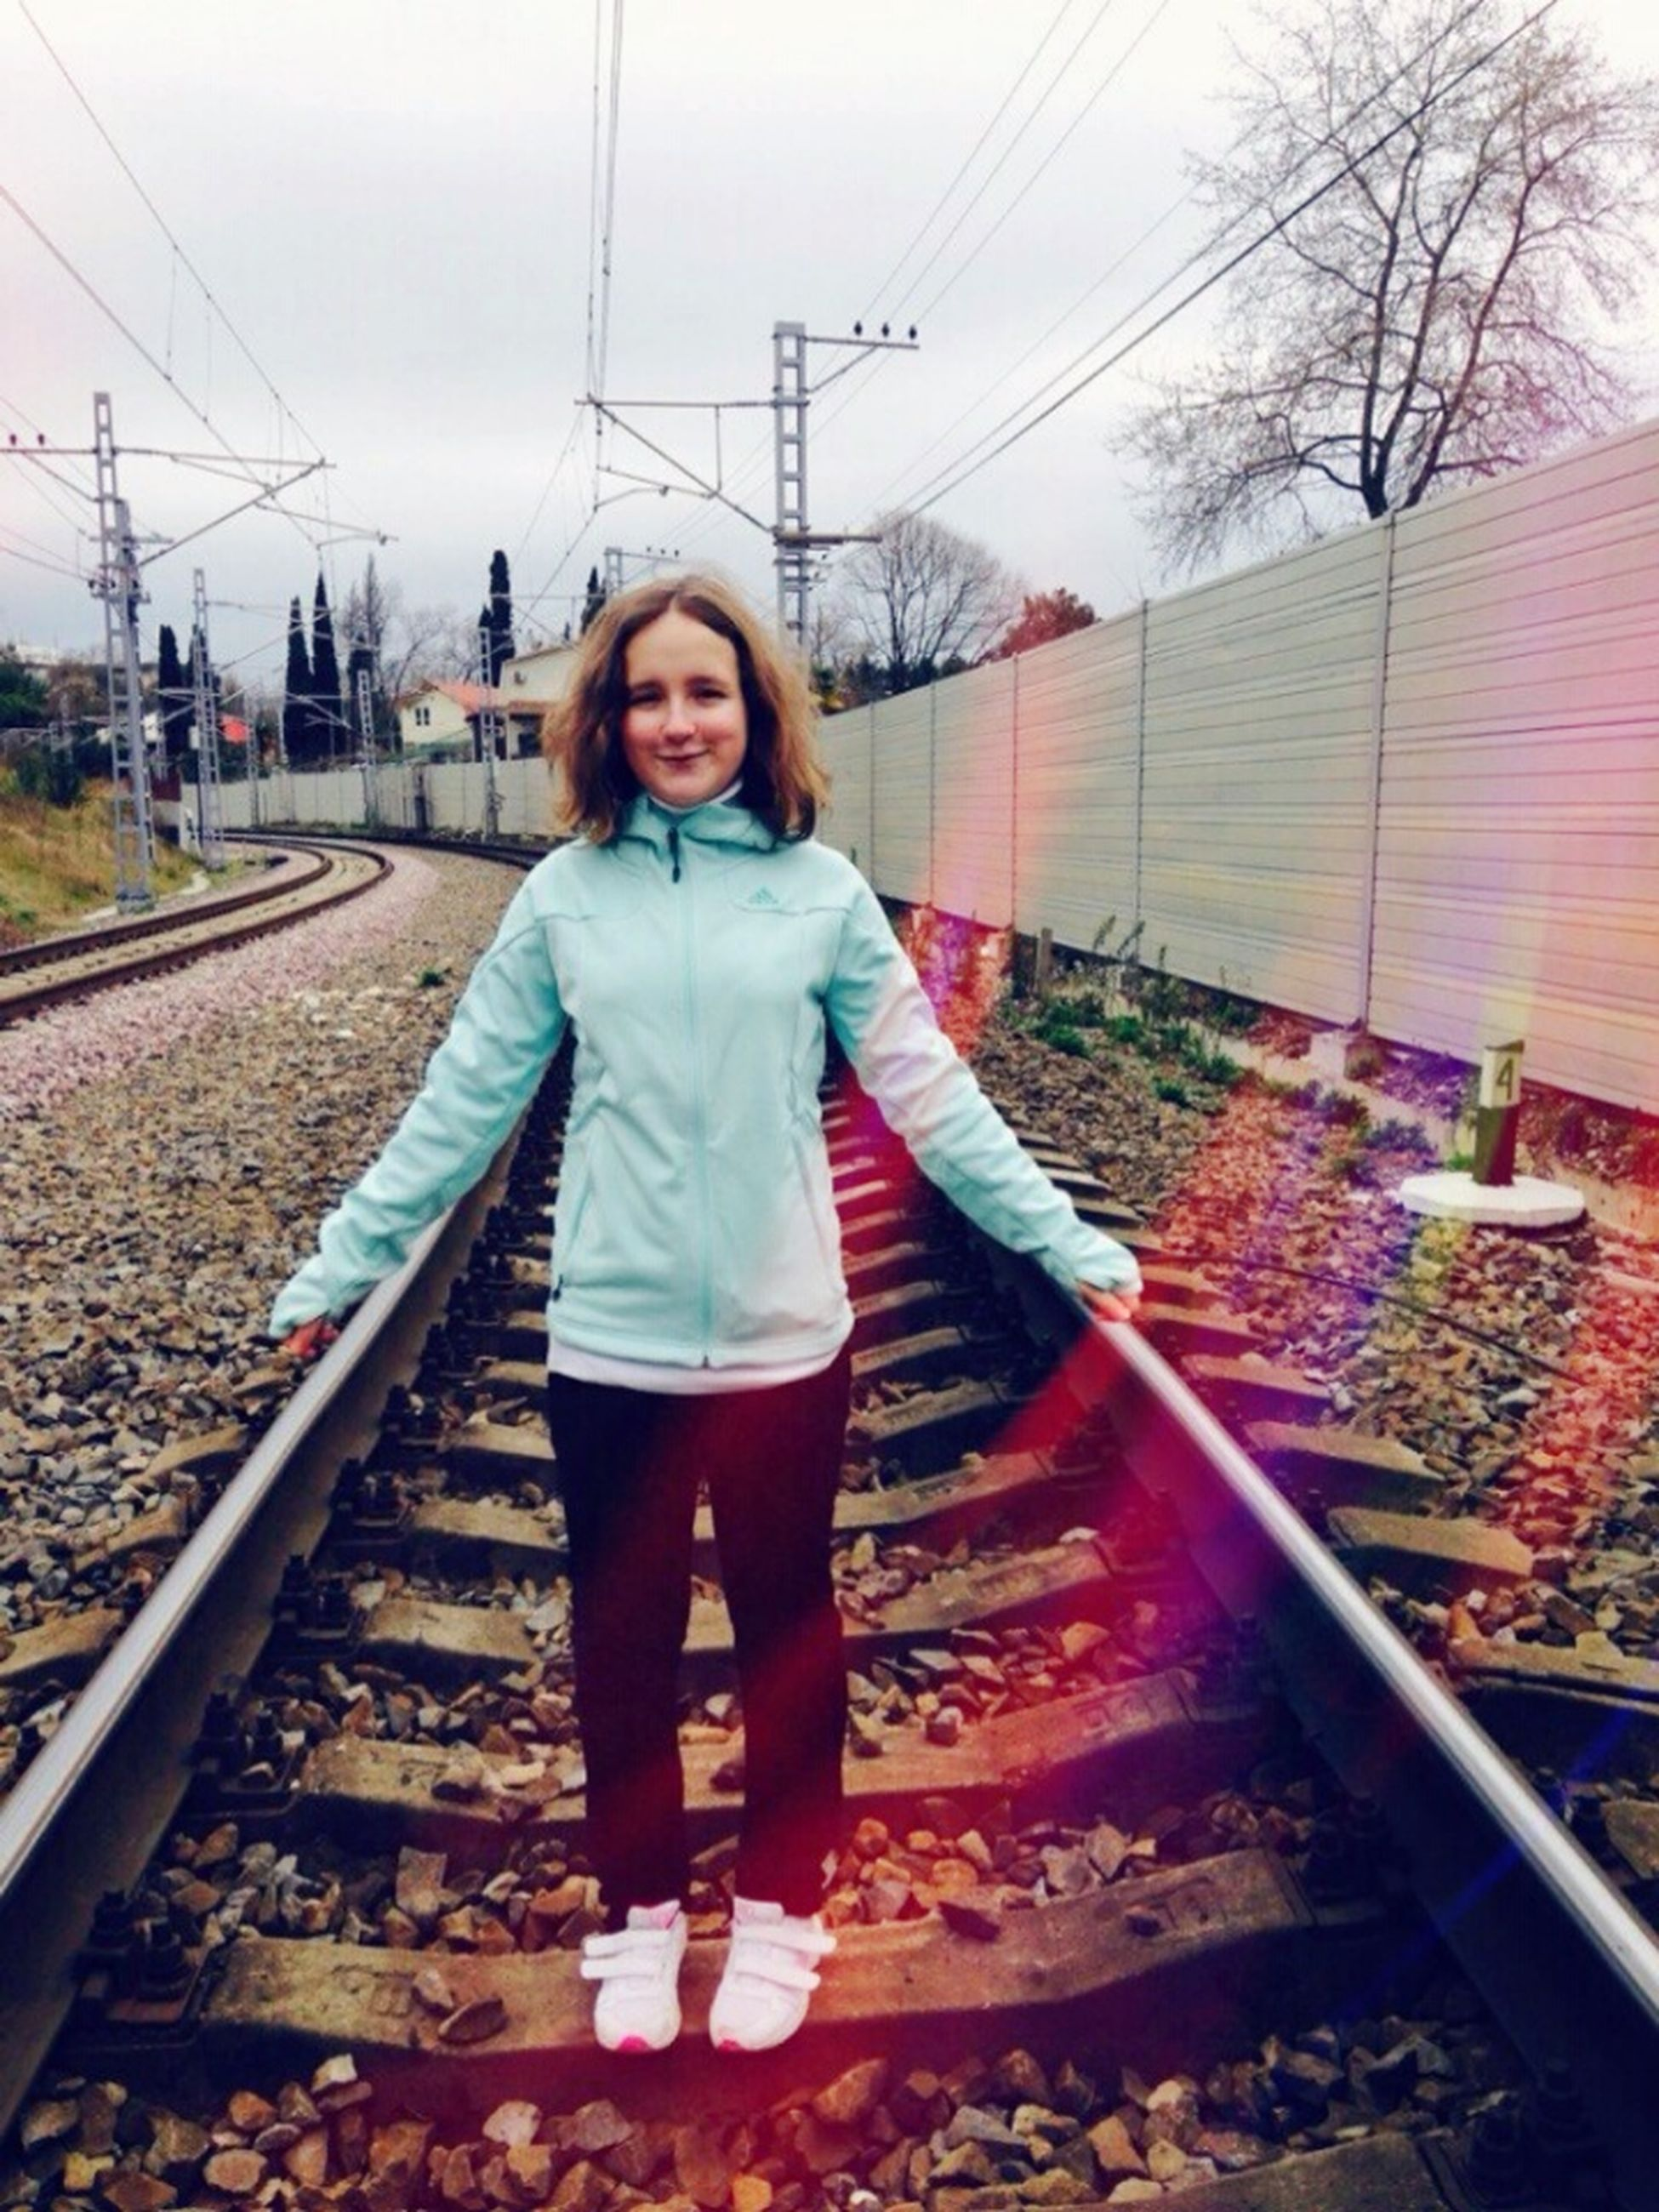 looking at camera, person, casual clothing, portrait, lifestyles, full length, railroad track, front view, standing, young adult, smiling, leisure activity, warm clothing, transportation, happiness, day, young women